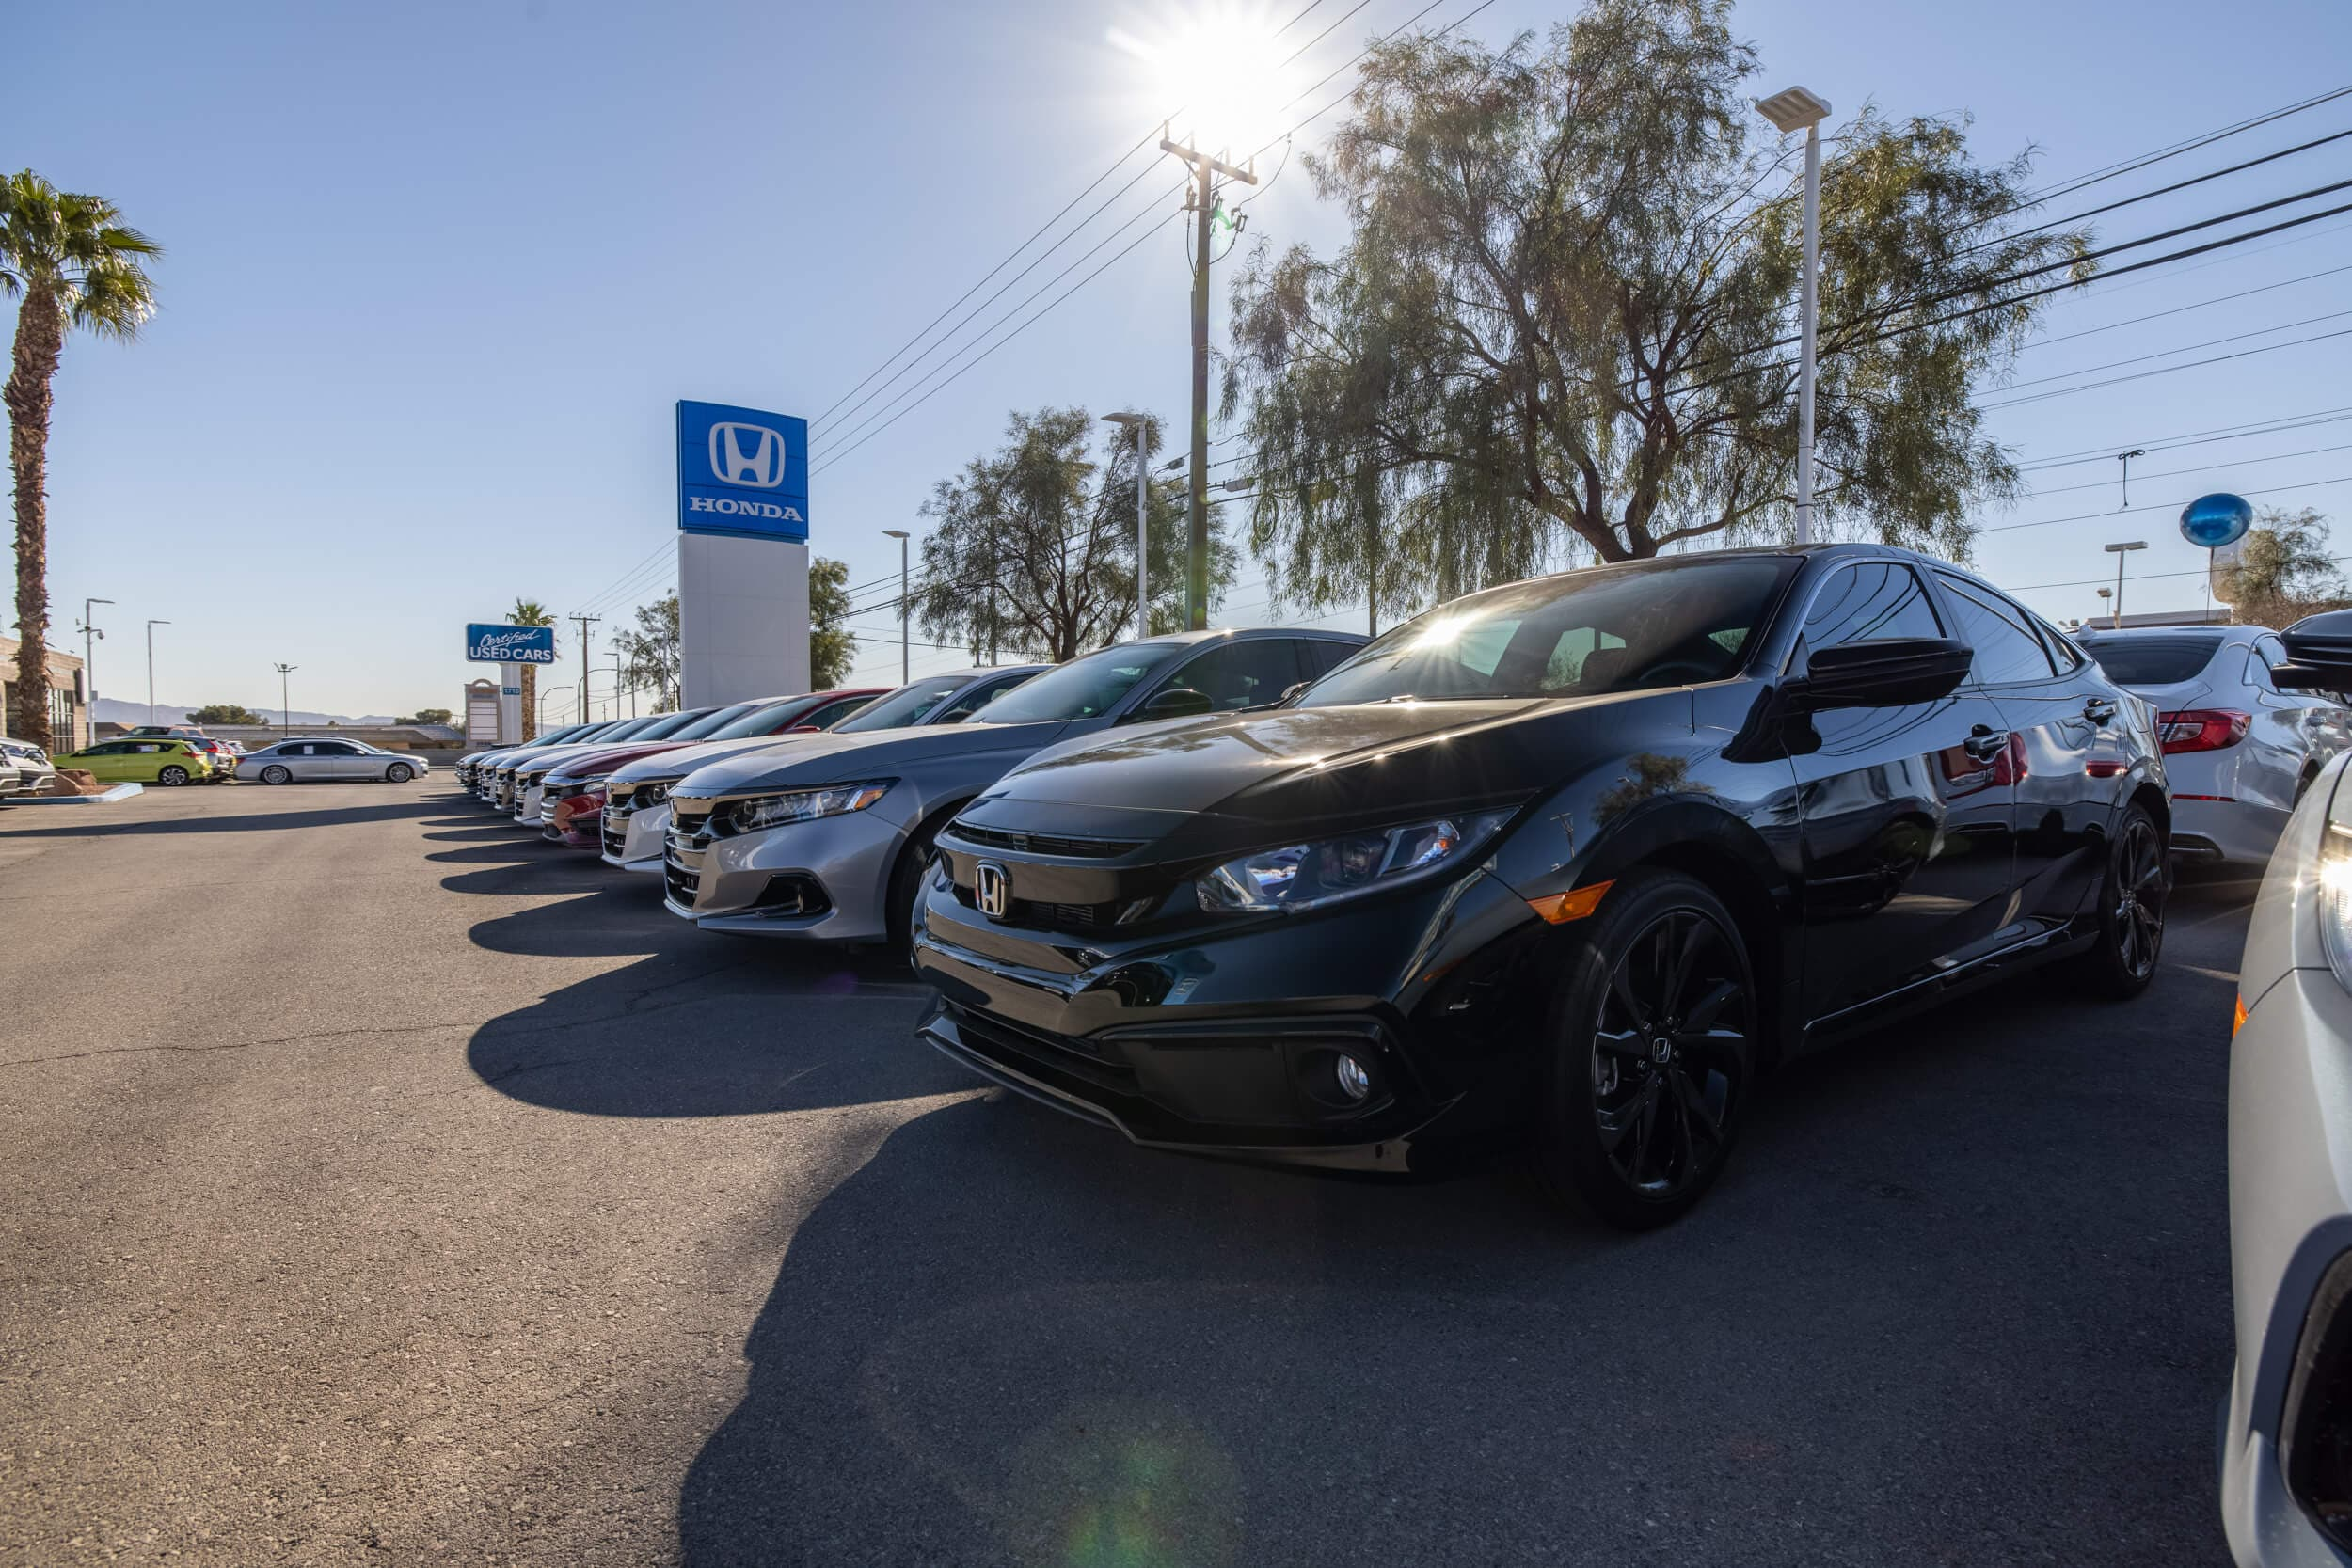 View of the cars, trucks, and SUVs available at AutoNation Honda East Las Vegas